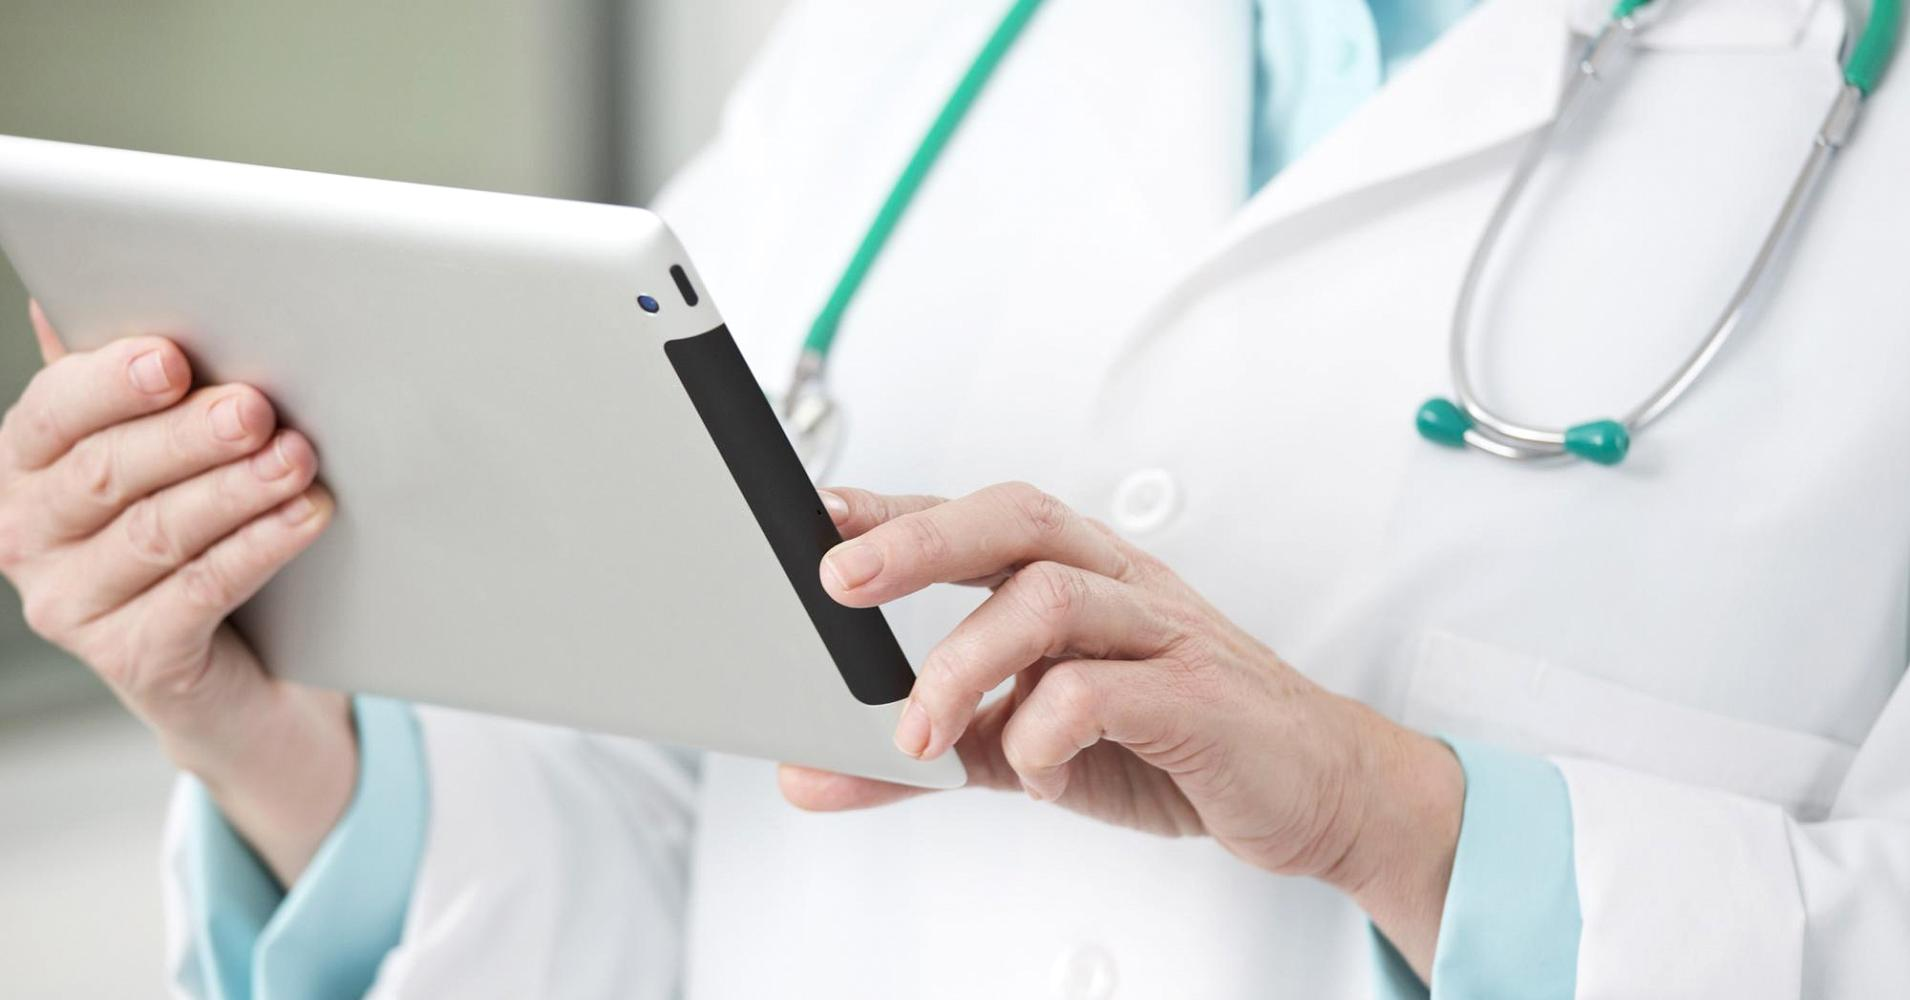 Image of a physician holding an iPad